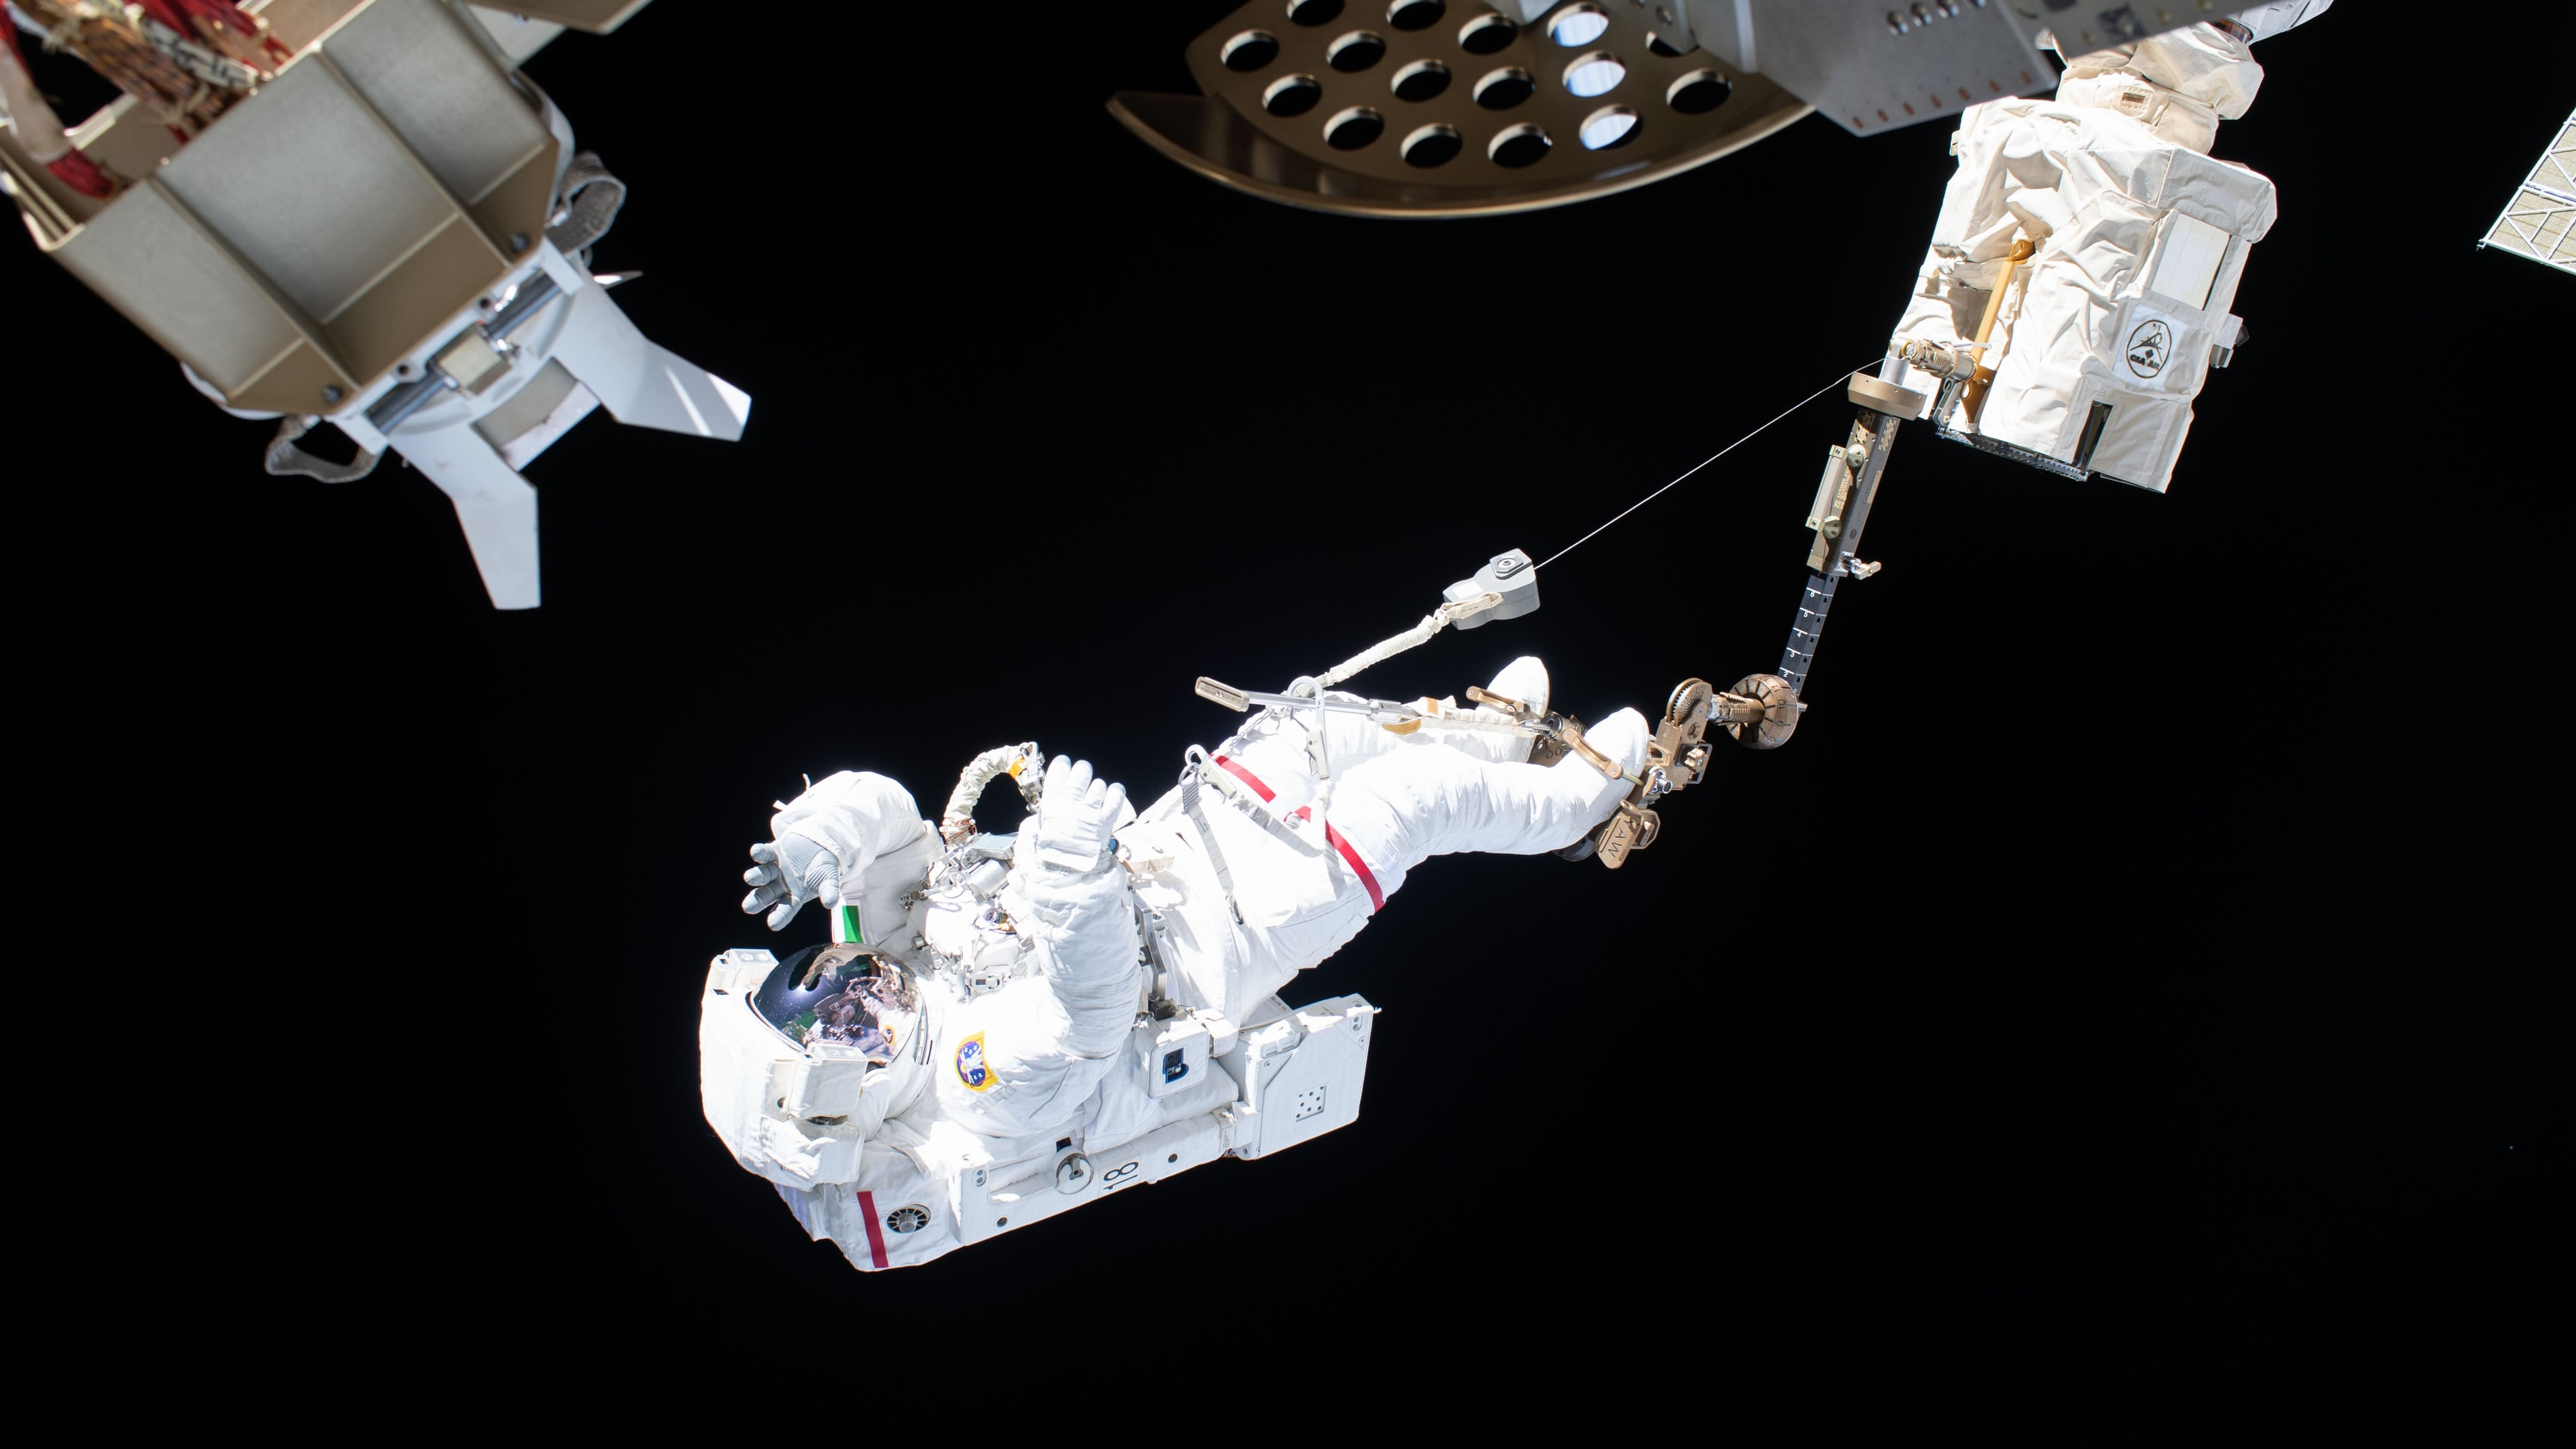 AMONG THE STARS - (Nov. 22, 2019) --- Astronaut Luca Parmitano of ESA (European Space Agency) is attached to an articulating portable foot restraint at the end of the Canadarm2 robotic arm during the second spacewalk to repair the International Space Station's cosmic particle detector, the Alpha Magnetic Spectrometer. (NASA) LUCA PARMITANO